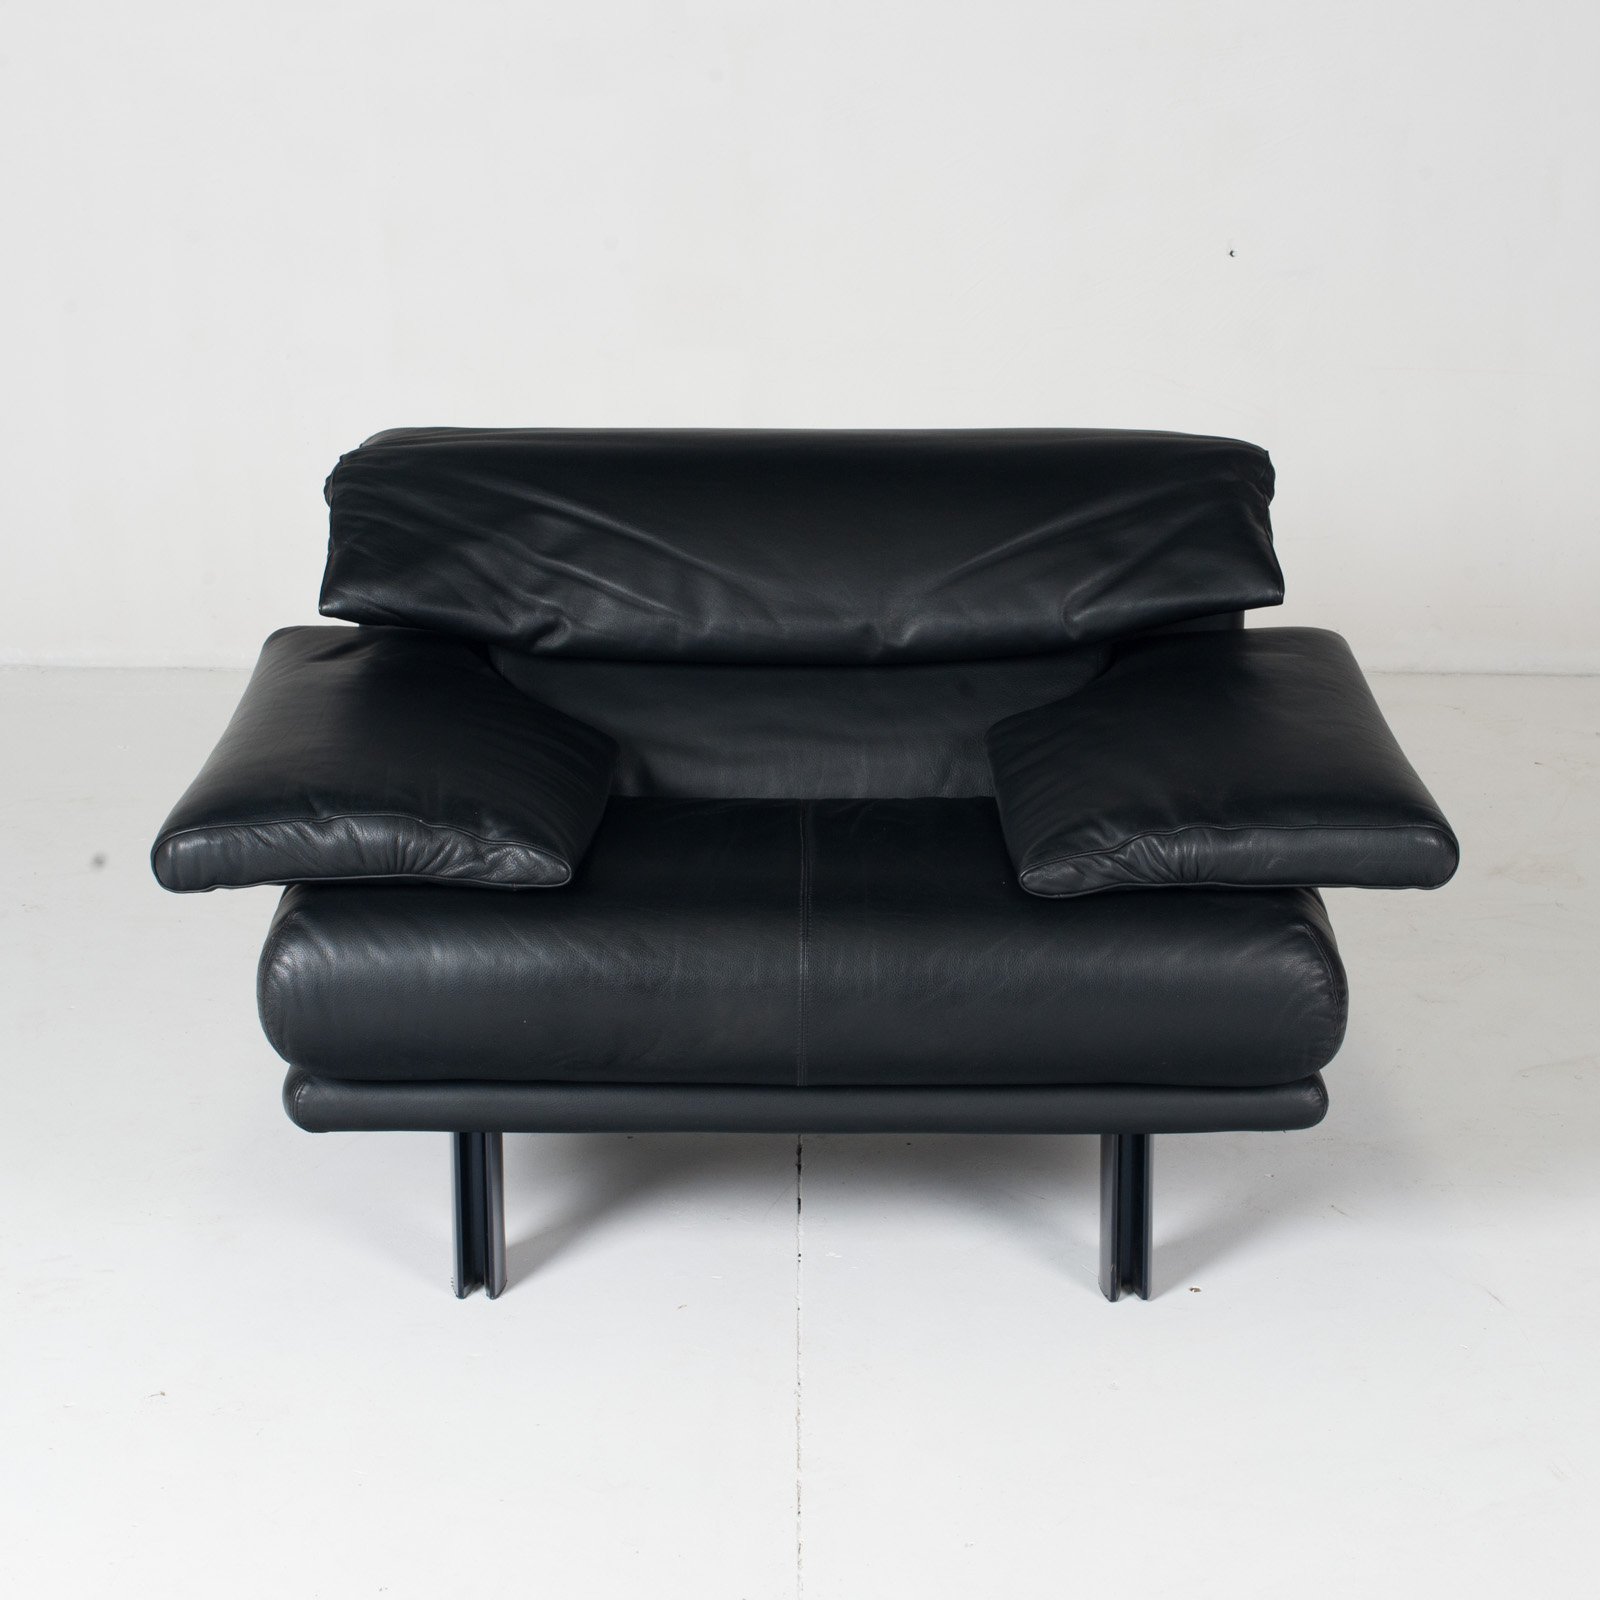 Alanda Armchair By Paolo Piva For B&b Italia In Black Leather, 1980s, Italy 2